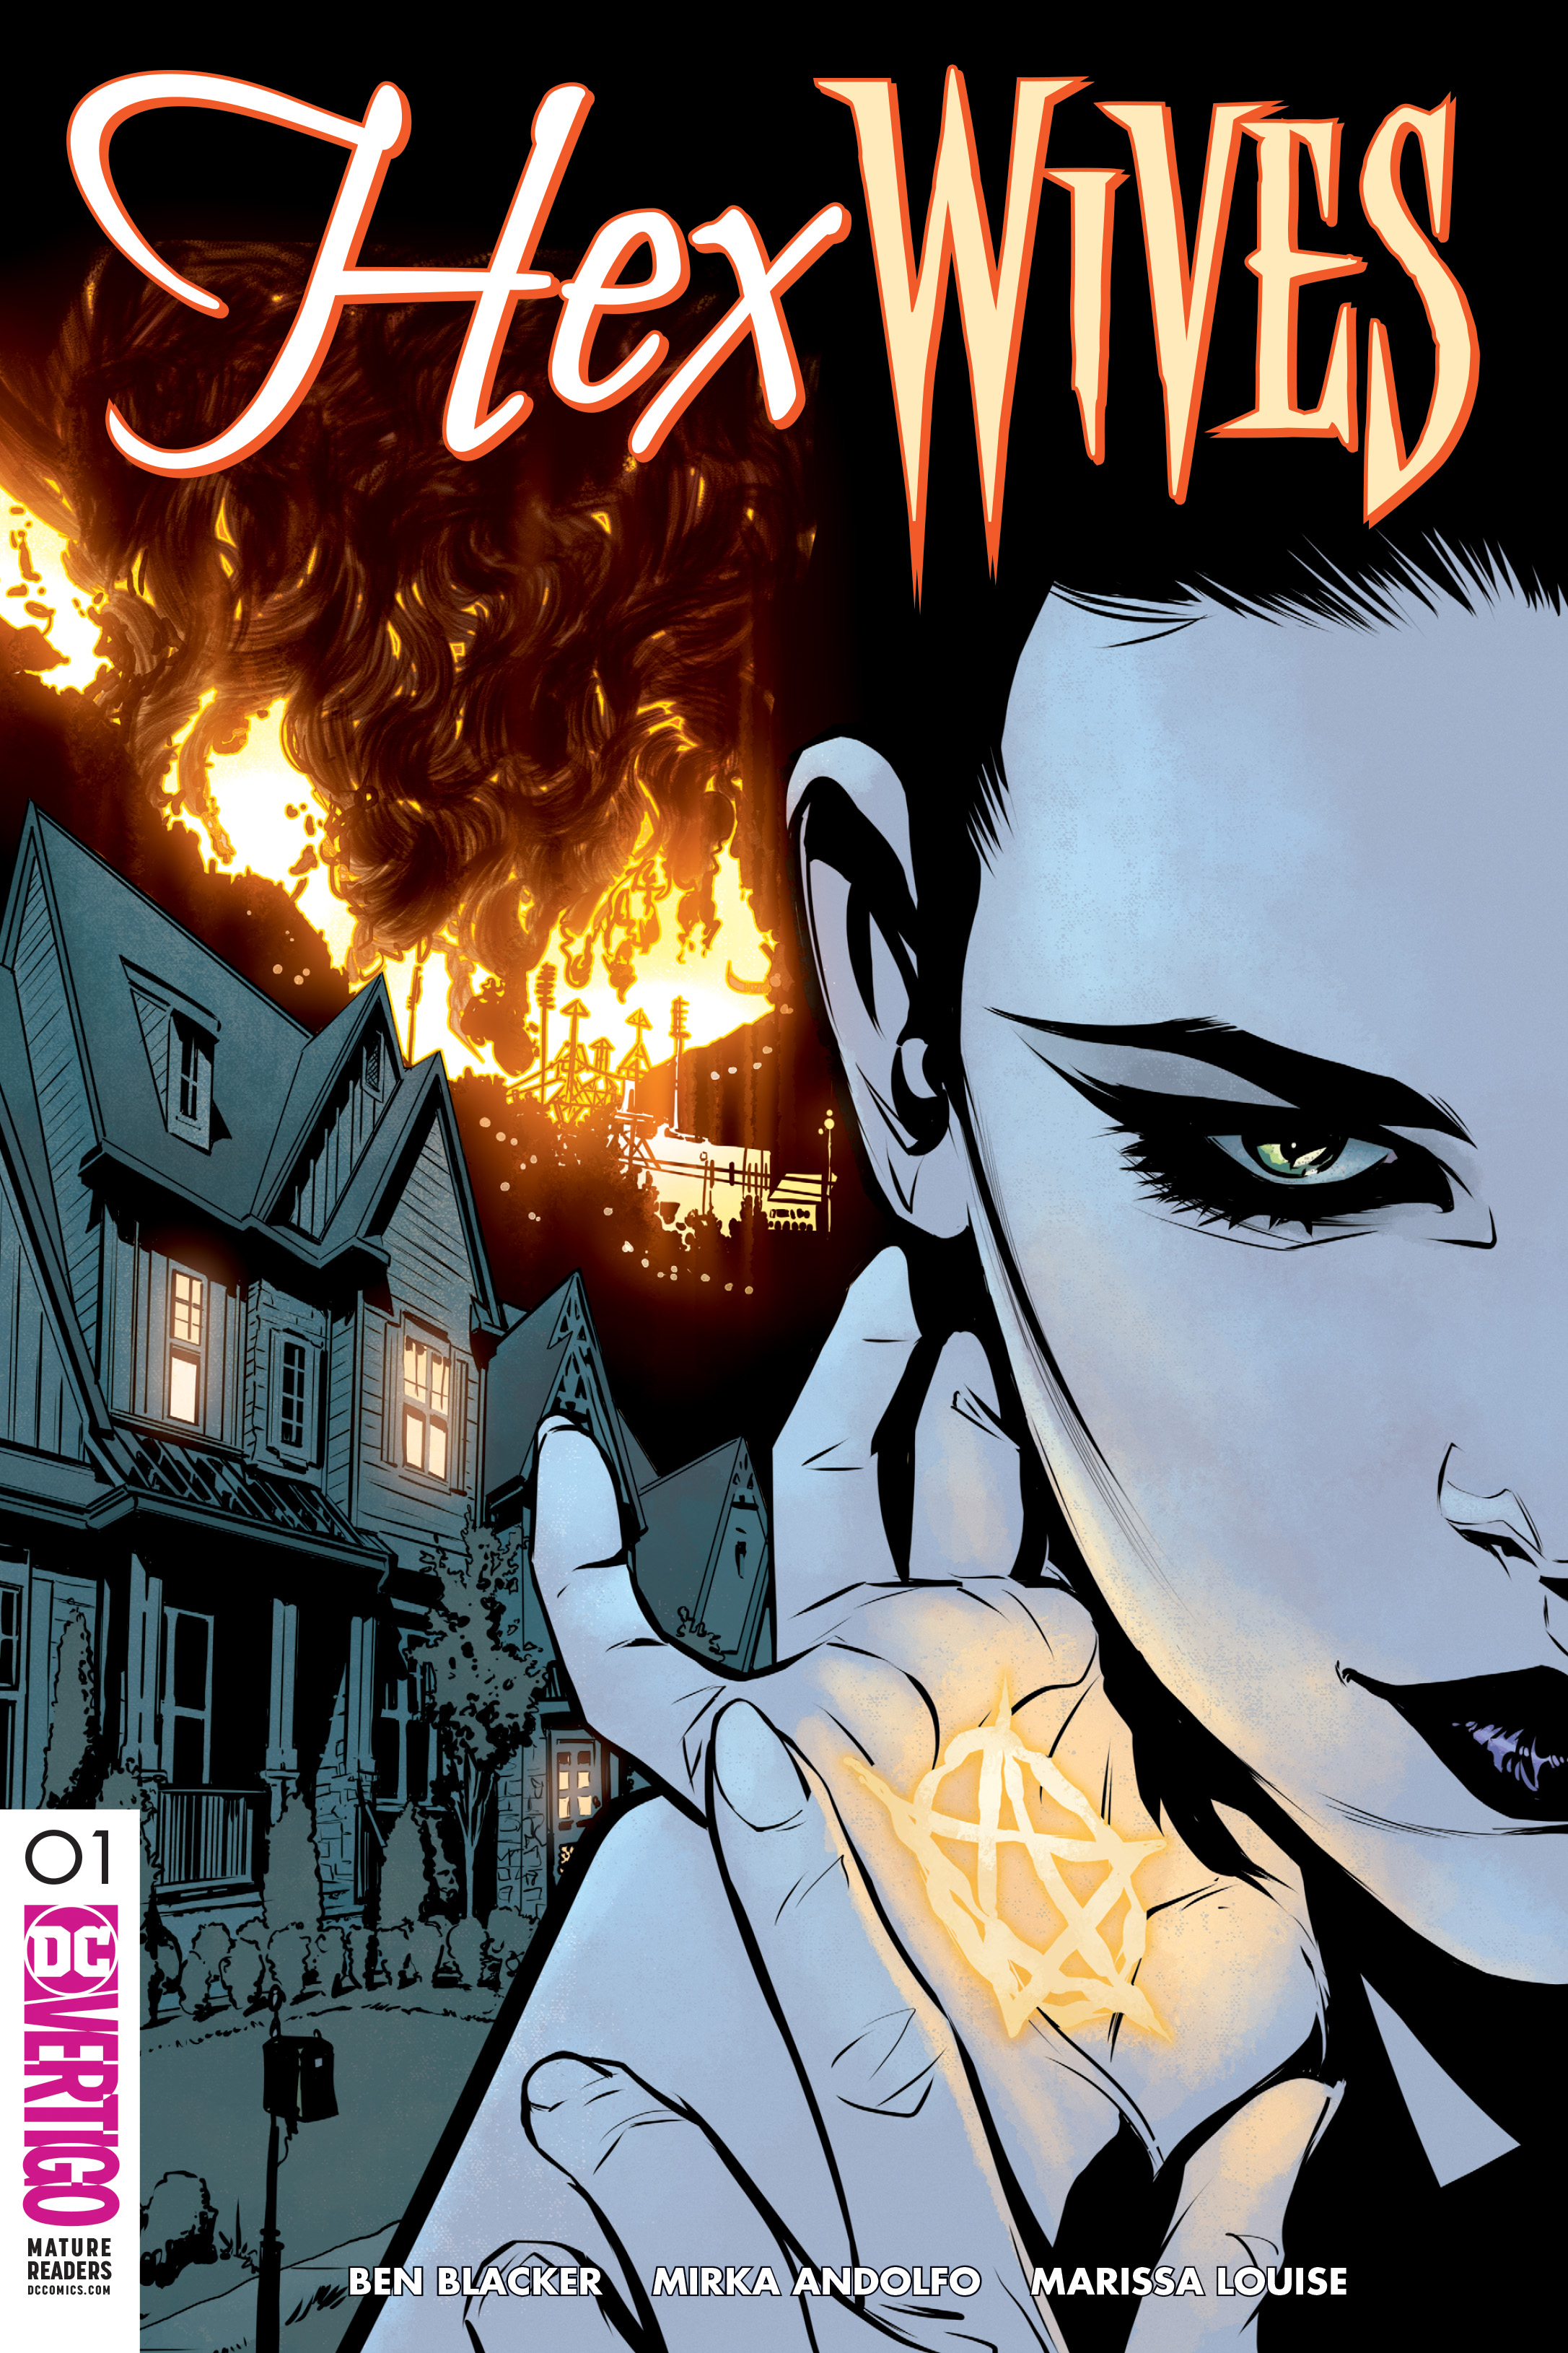 HEX WIVES #1 (OF 1) (MR)